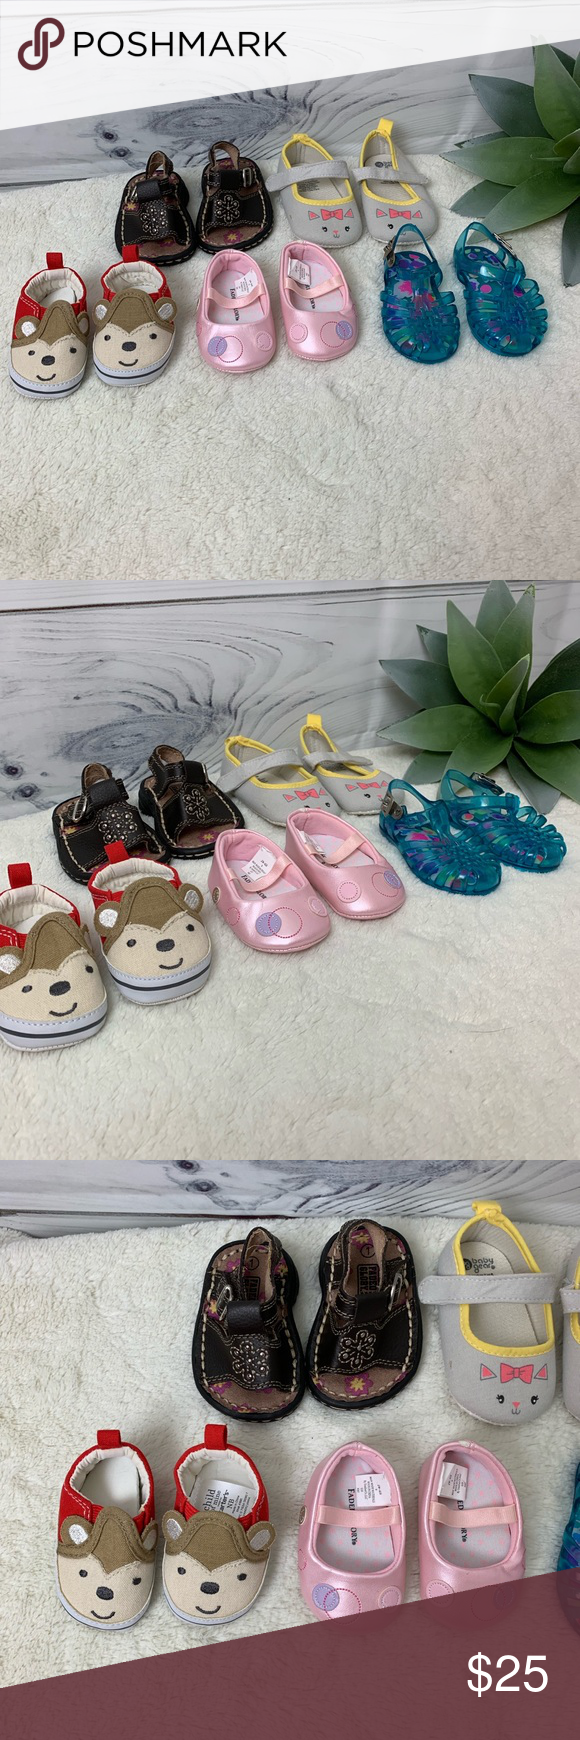 5 Pairs Of Girls Baby Shoes Carters Faded Glory Faded Glory Brown Sandals Size 1